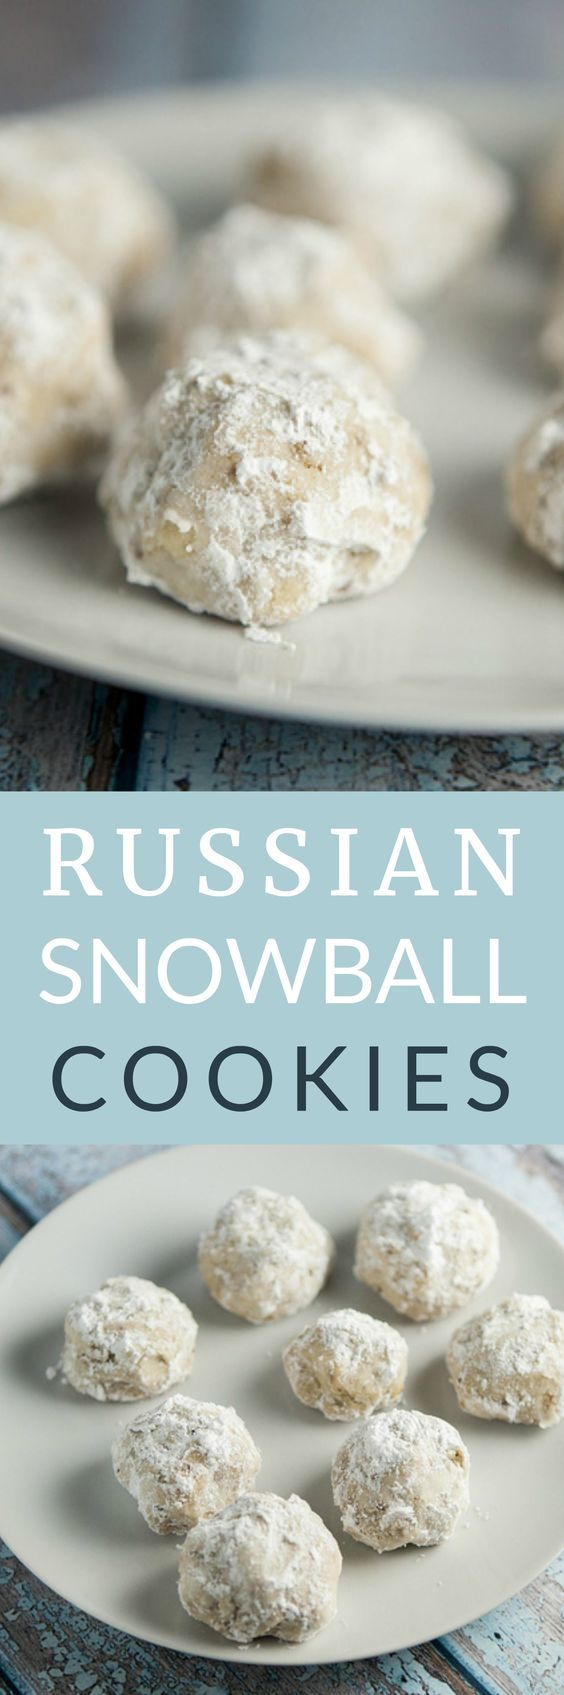 The BEST Powdered Sugar SNOWBALL Cookies! This is my favorite Christmas cookie recipe! These Russian Tea Cake Cookies are so easy to make! They're made with pecans and then rolled in powdered sugar after baking! I make a few batches to hand out for gifts around the holidays - everyone always love them!